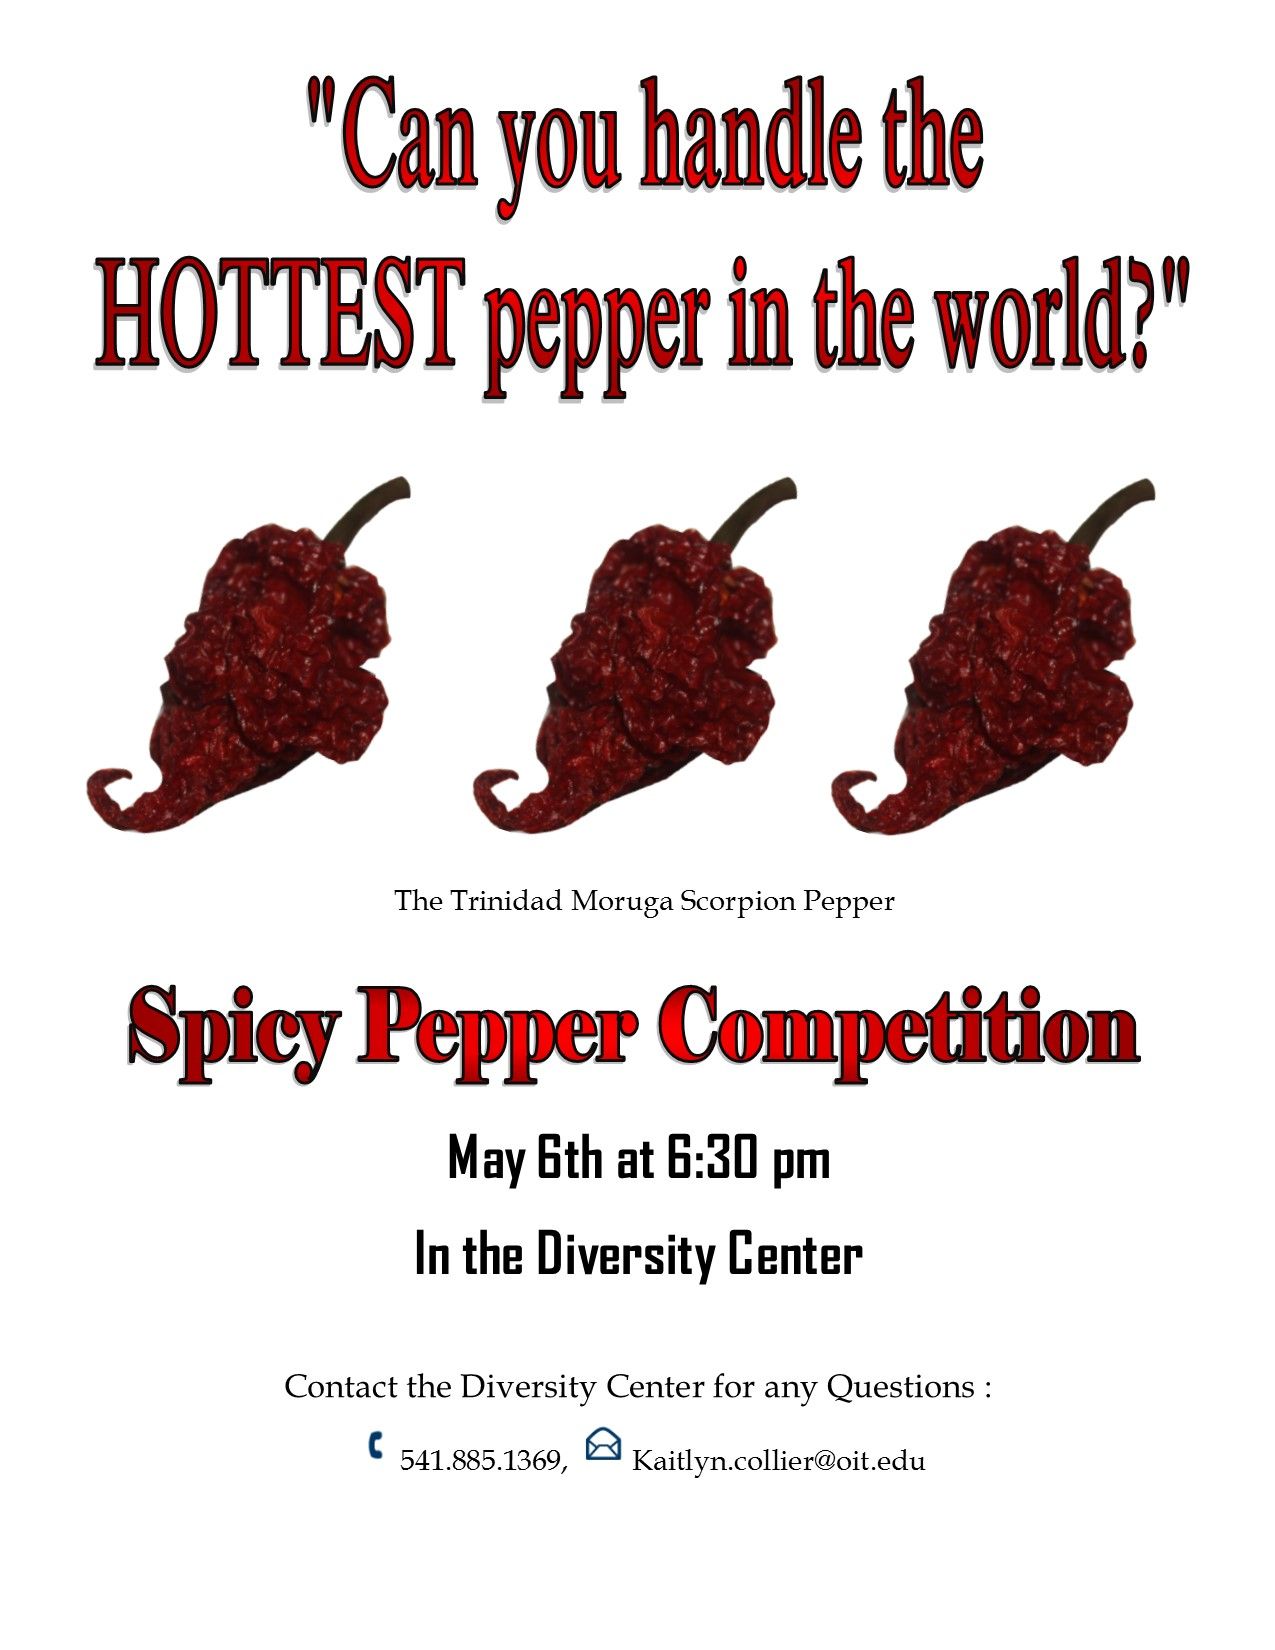 Spicy Pepper Competition